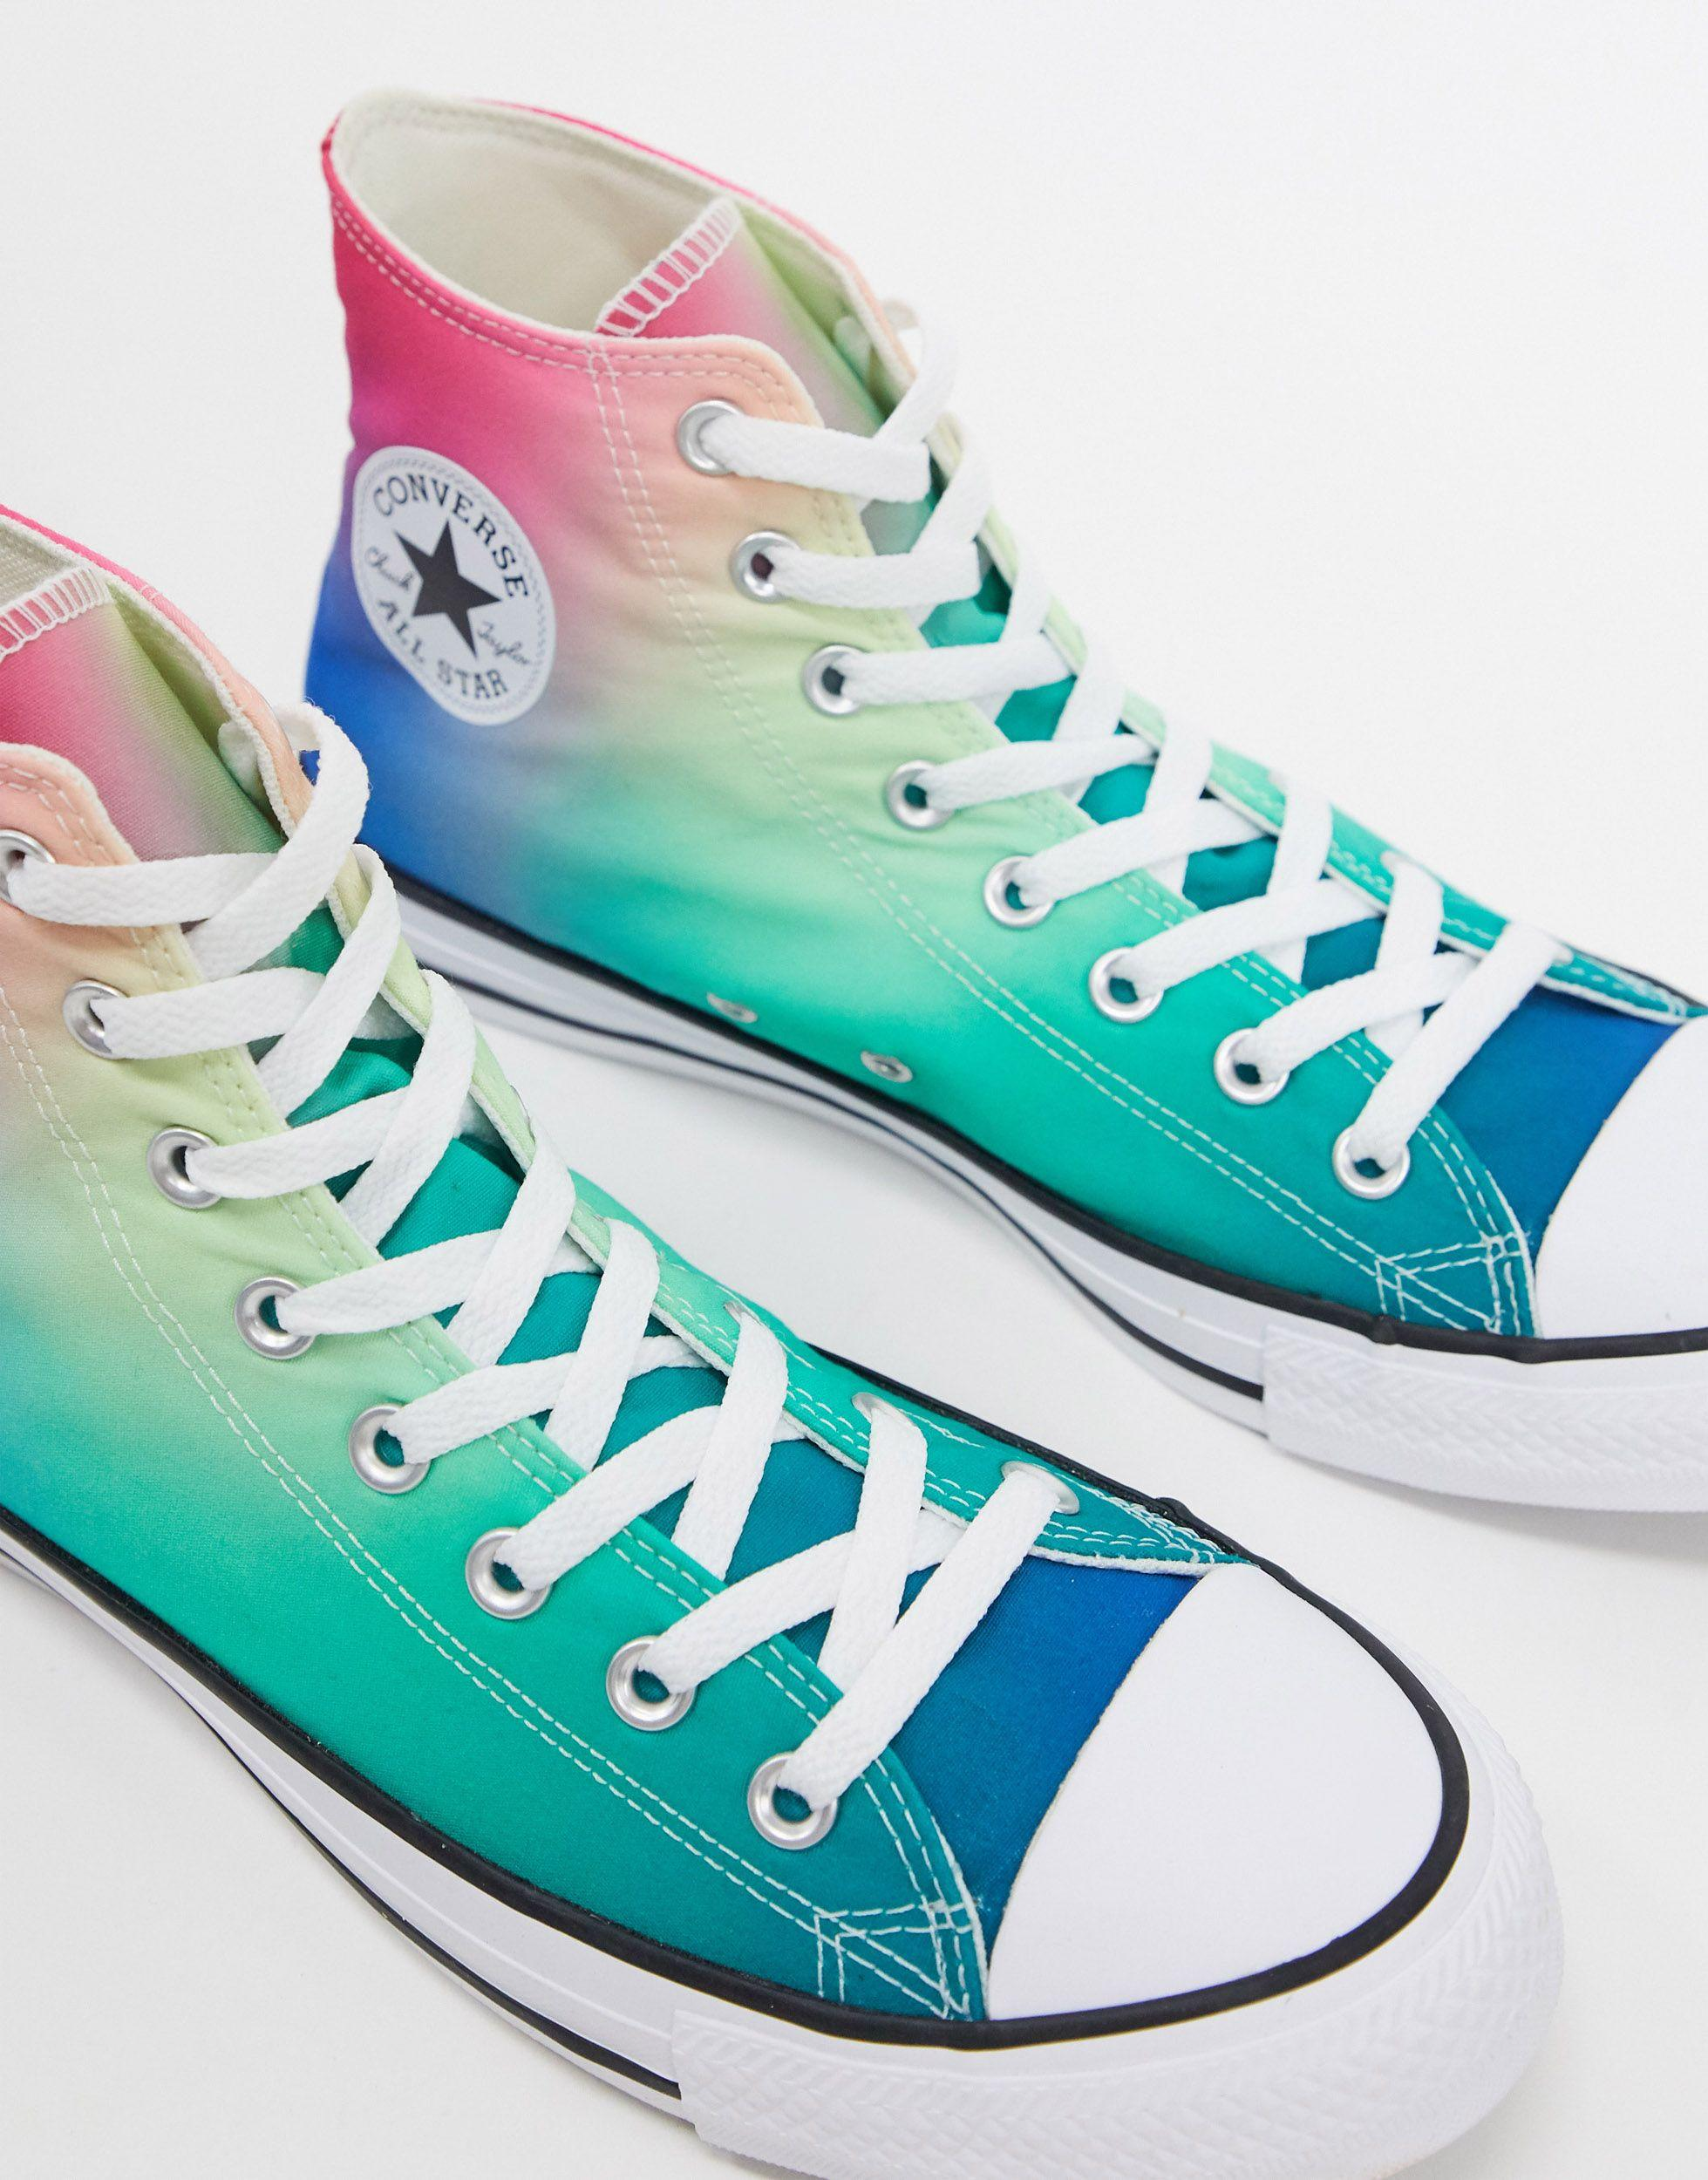 Converse Chuck Taylor All Star Hi Ombre Sneakers in Blue - Lyst